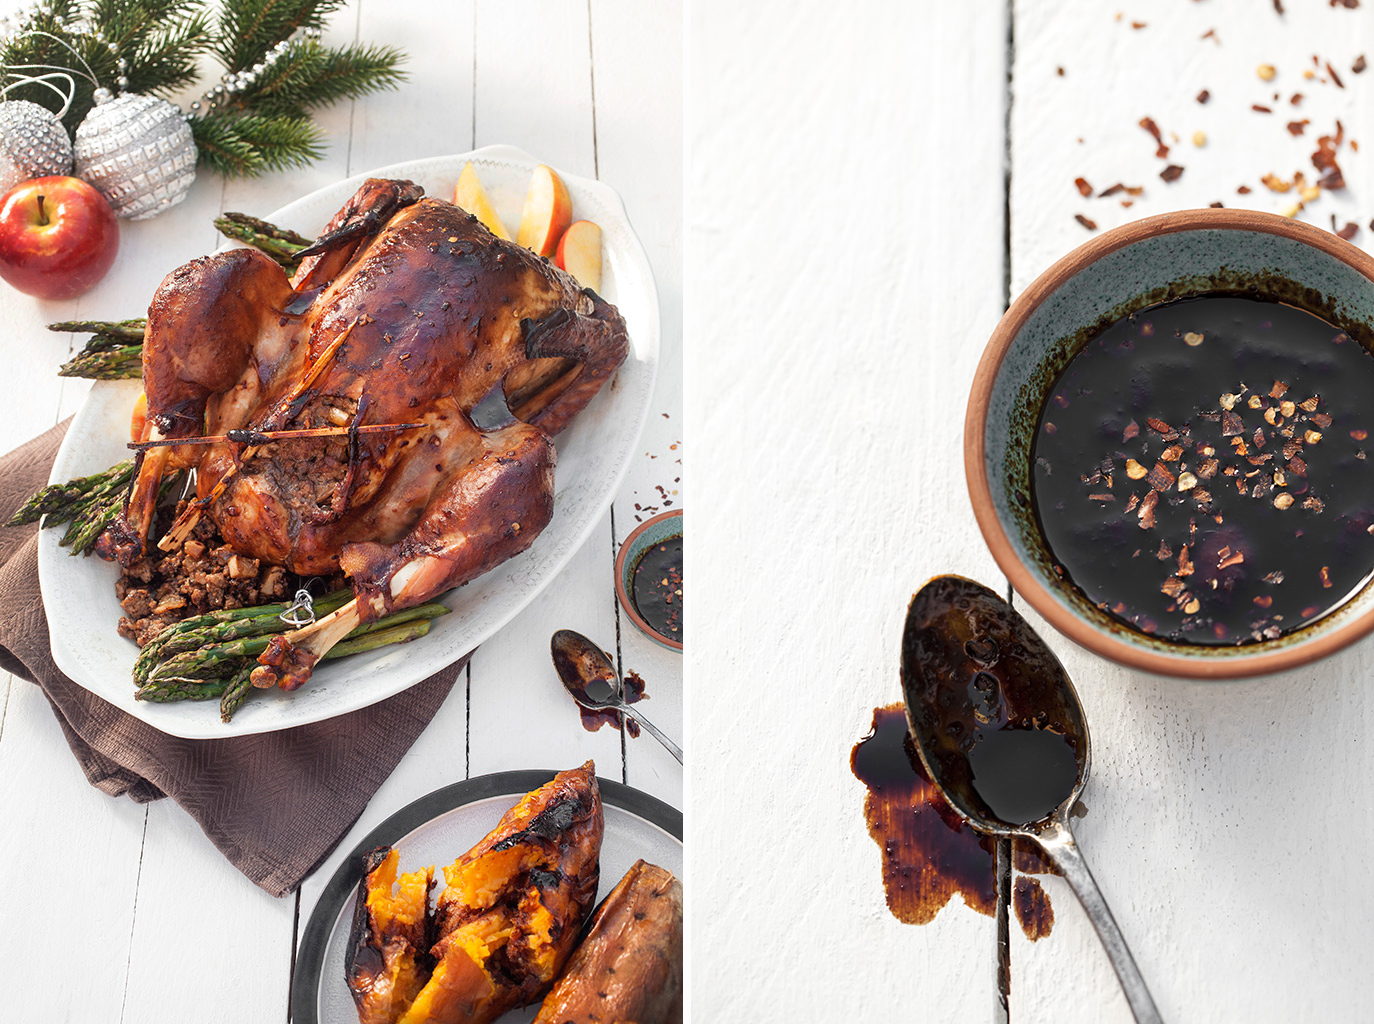 Hoisin Glazed Barbecued Turkey with Pork, Fruit and Water Chestnut Stuffing